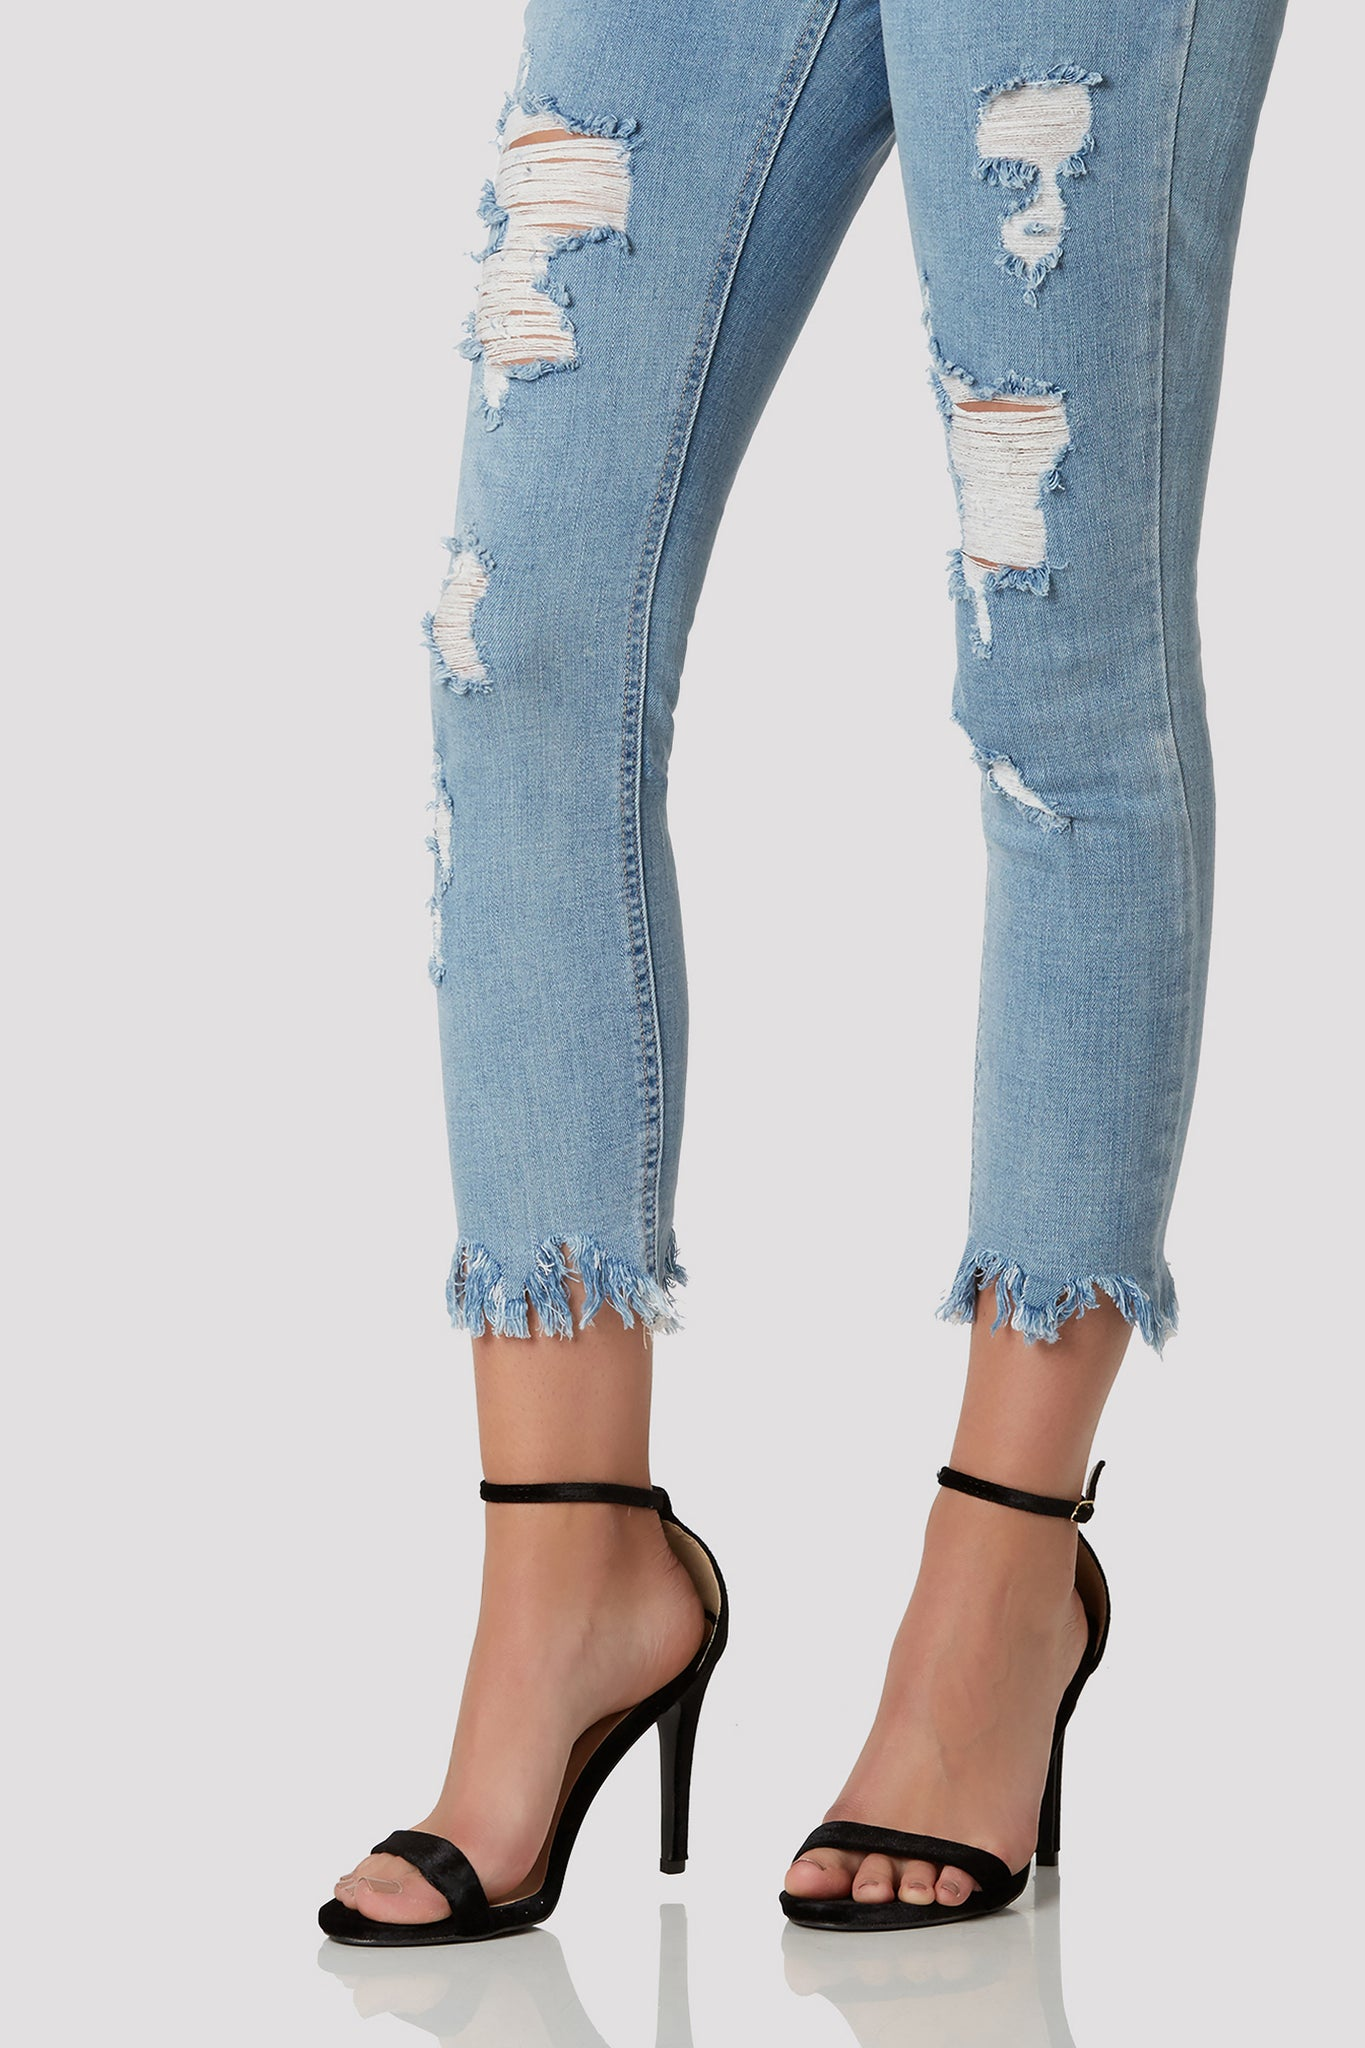 Trendy mid rise skinnies with distressing in front and uneven hem with frayed detailing.